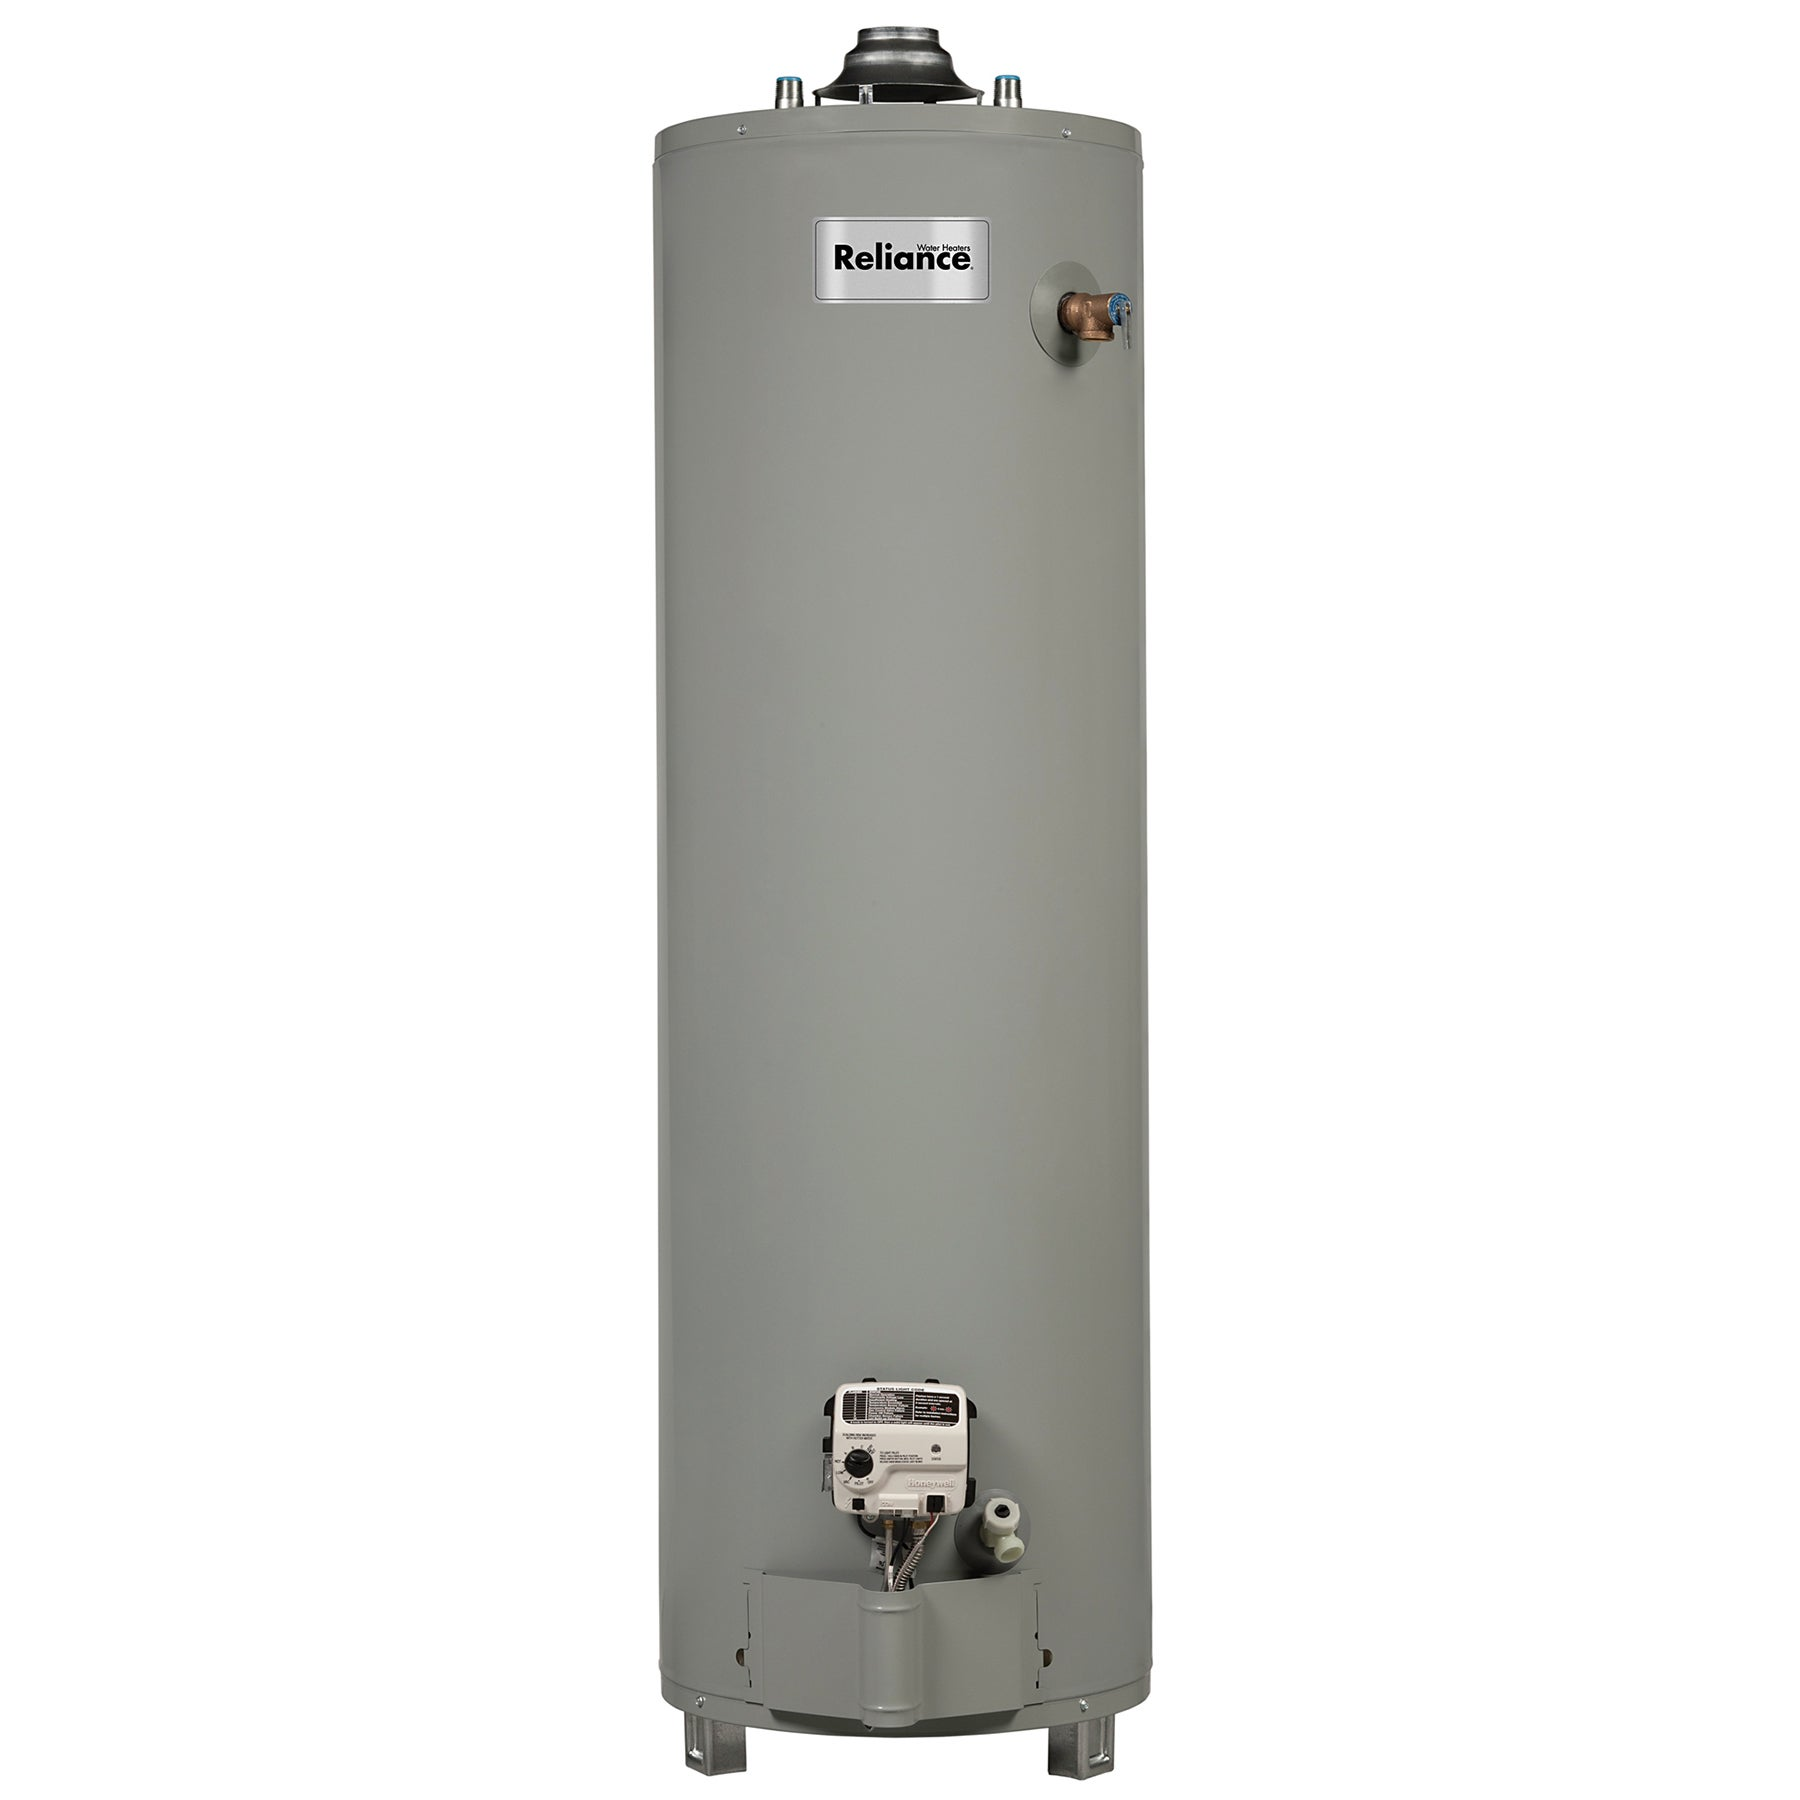 Jensen Reliance 6 50 Unbct 50 Gallon Gas Water Heater (Wa...